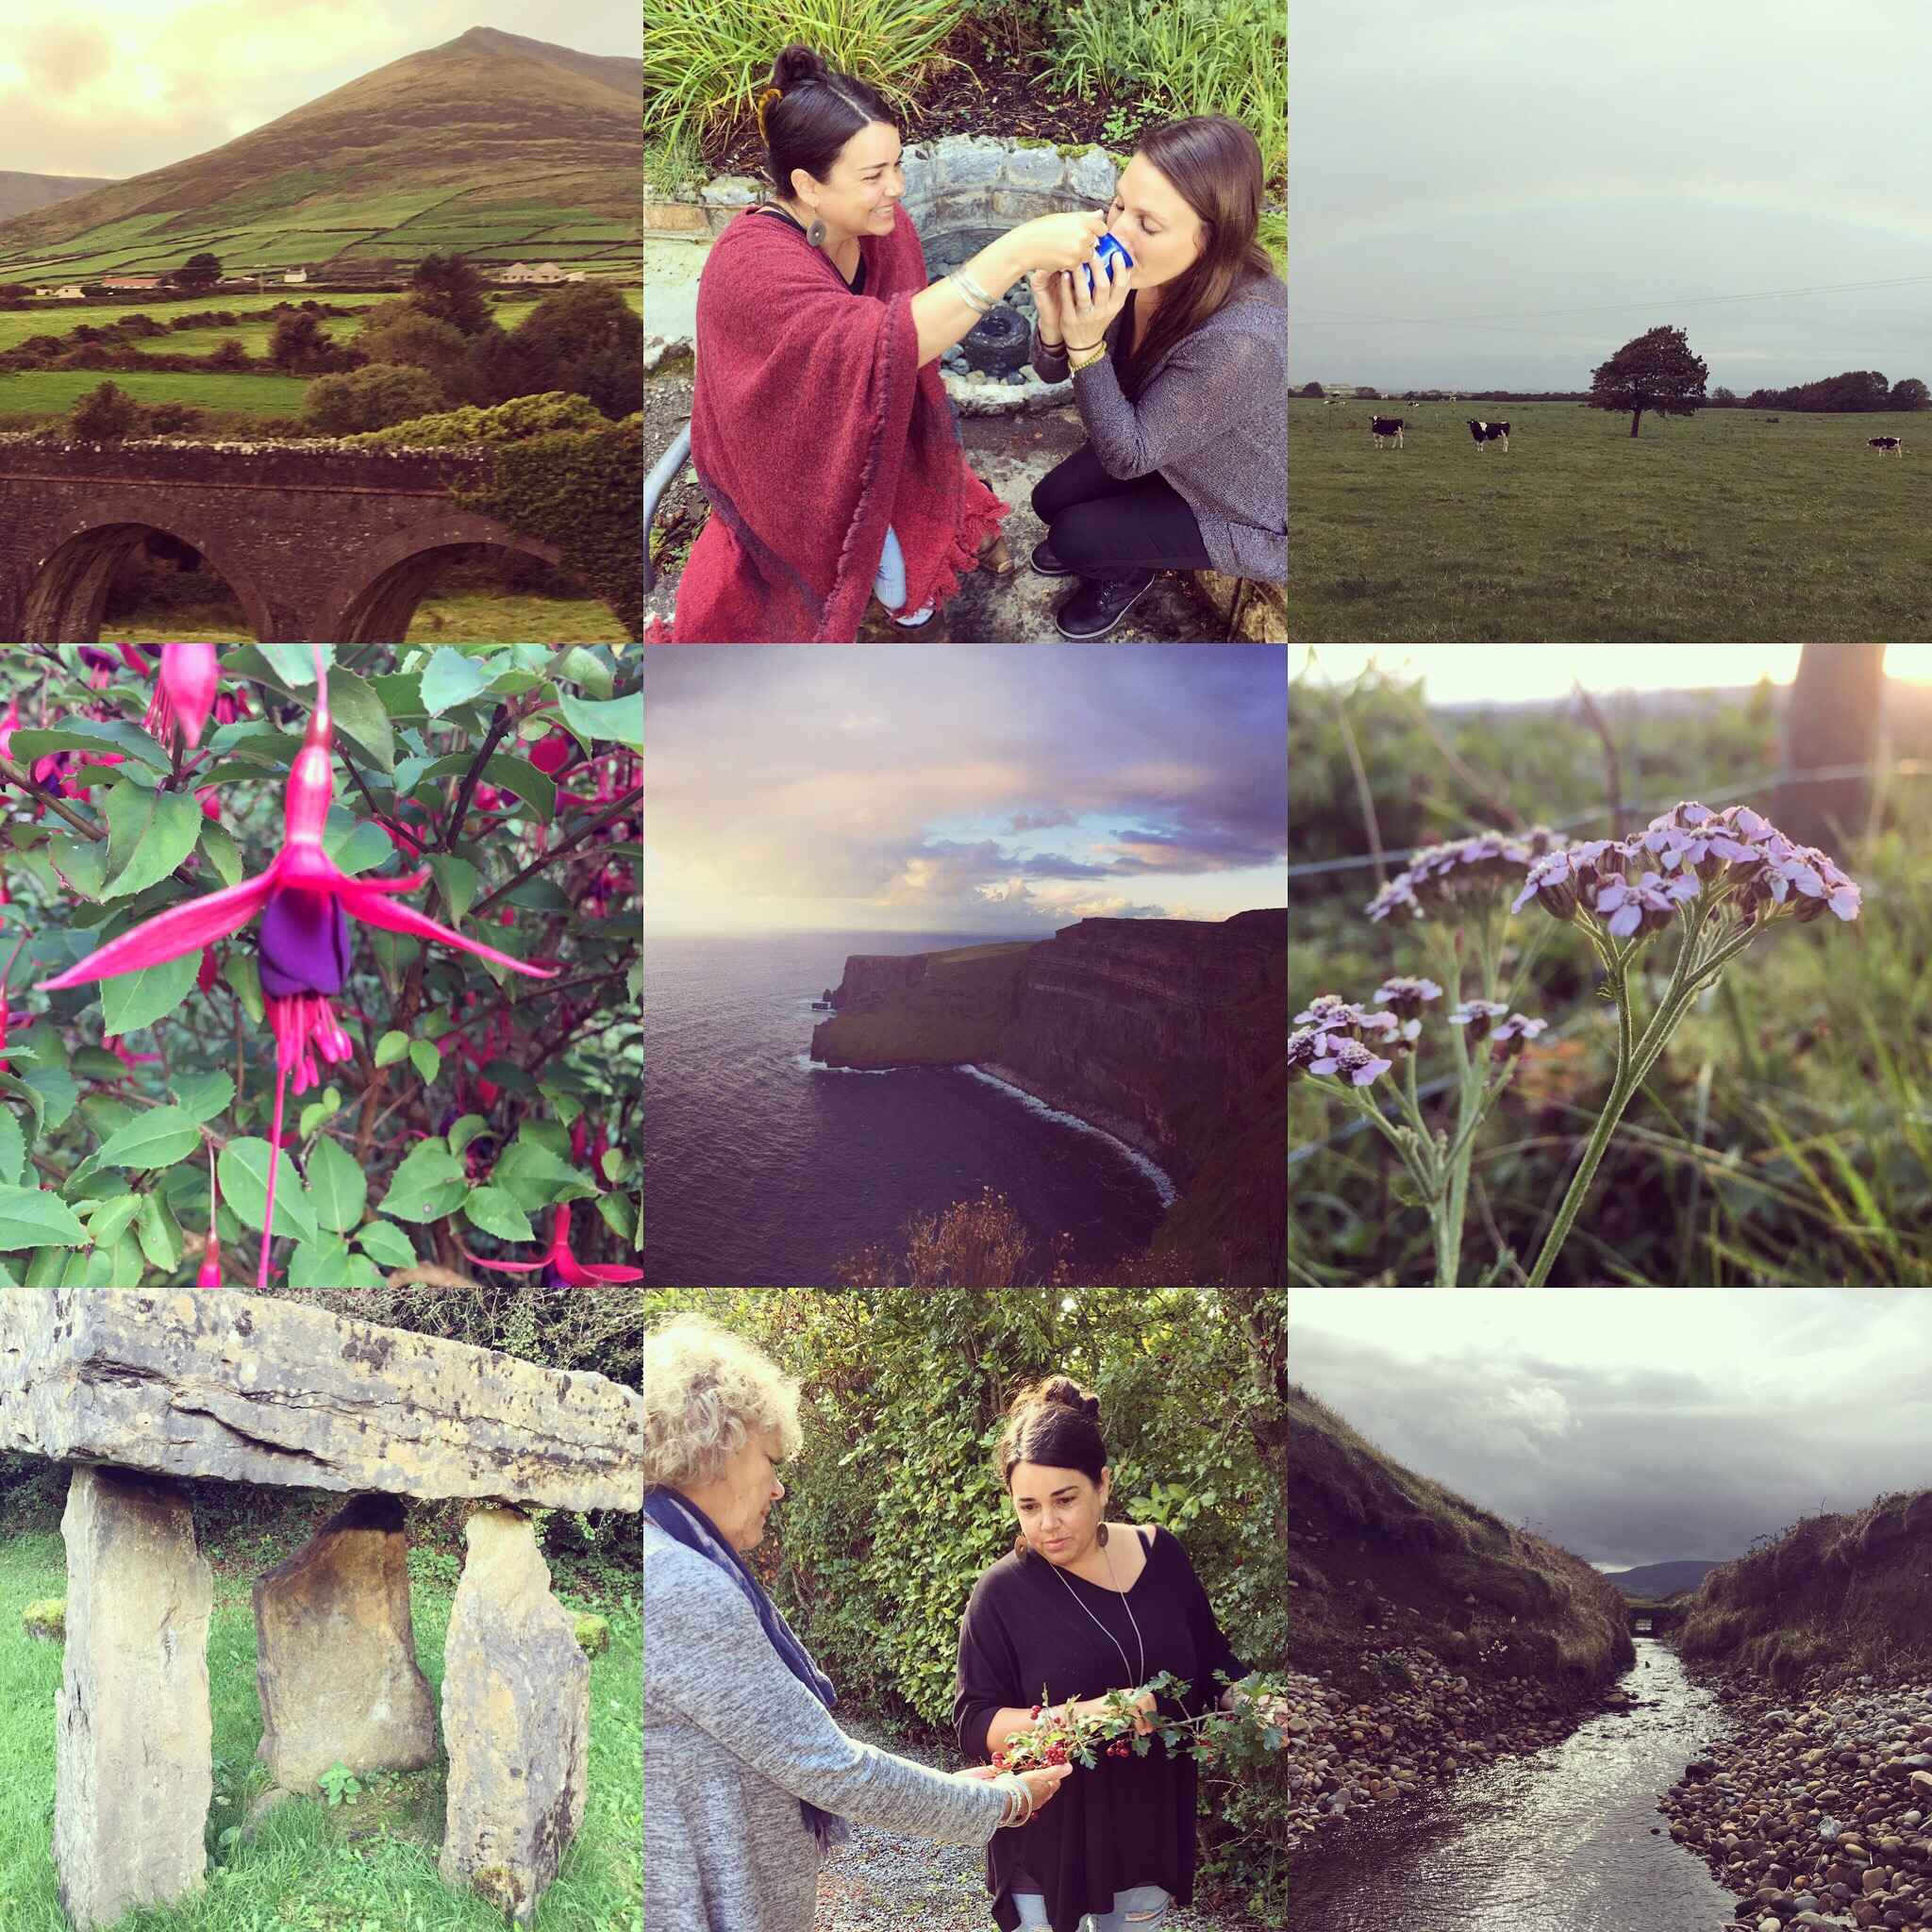 """Ireland August 2019 - The Spirit of Ireland Plant Wisdom RetreatCome, join us and explore the Sacred Emerald Isle on our 2019 Ireland retreat with Herbalists and Flower Essence Practitioners Lupo Passero & Brooke Sullivan. We are excited to share our great grandmother's birthplace with you and to explore these ancient lands of magic and gentle mysticism, quite a nurturing seat of Soul to be found on the planet.This retreat is a collaboration between Twin Star Tribe & The Wild Temple: two amazing, groundbreaking schools spanning from California to California, offering an exciting range of classes, programs, workshops and retreats around the world.Join us for this adventure of a lifetime & discover for yourself the magic of Ireland's great heart.This trip is perfect for all levels of herbal experience; whether you are a beginner, the """"budding"""" herbalist or if you're an experienced herbalist and would like a deeper understanding of sacred plant medicine. This a plant-centric, cultural tour of incredibly potent + sacred sites! Each day will include time with our herbal allies, interaction with the local plants and time for exploring the rich history of this sacred land. At the end of this tour, each participant will be awarded a Certificate of Completion to commemorate what we have discovered and learned on this trip. August 1 - 7 2019August 1-7 2019Registration information can be found HERE"""